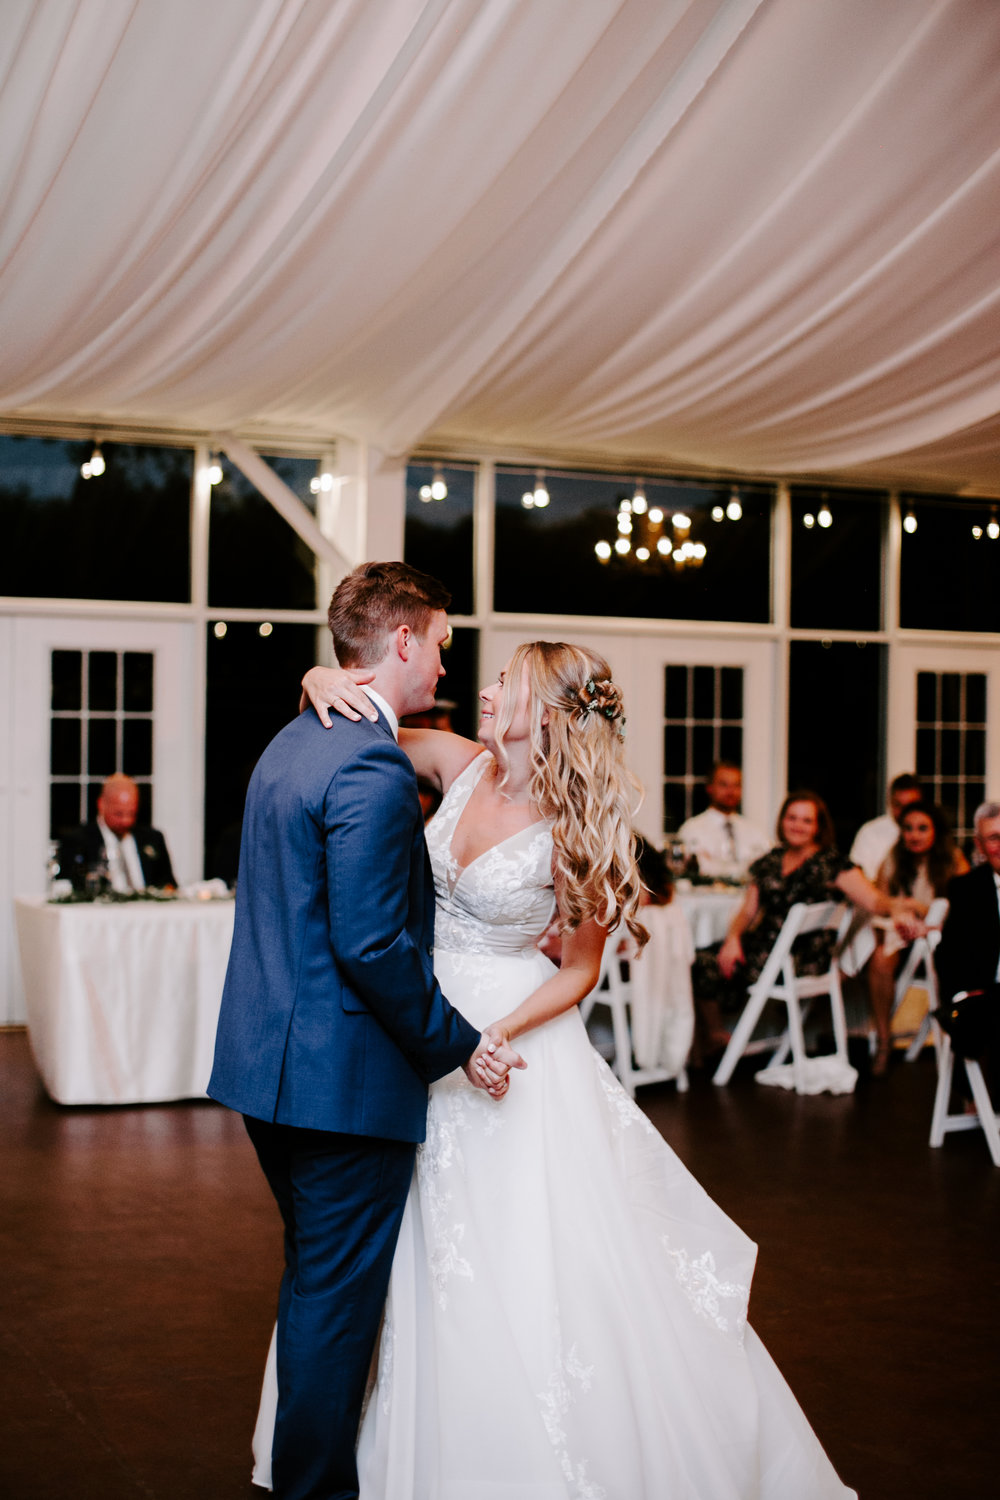 Katy and Michael The Garden Pavilion at Ritz Charles Wedding in Indianapolis Indiana Emily Elyse Wehner Photography LLC-87.jpg